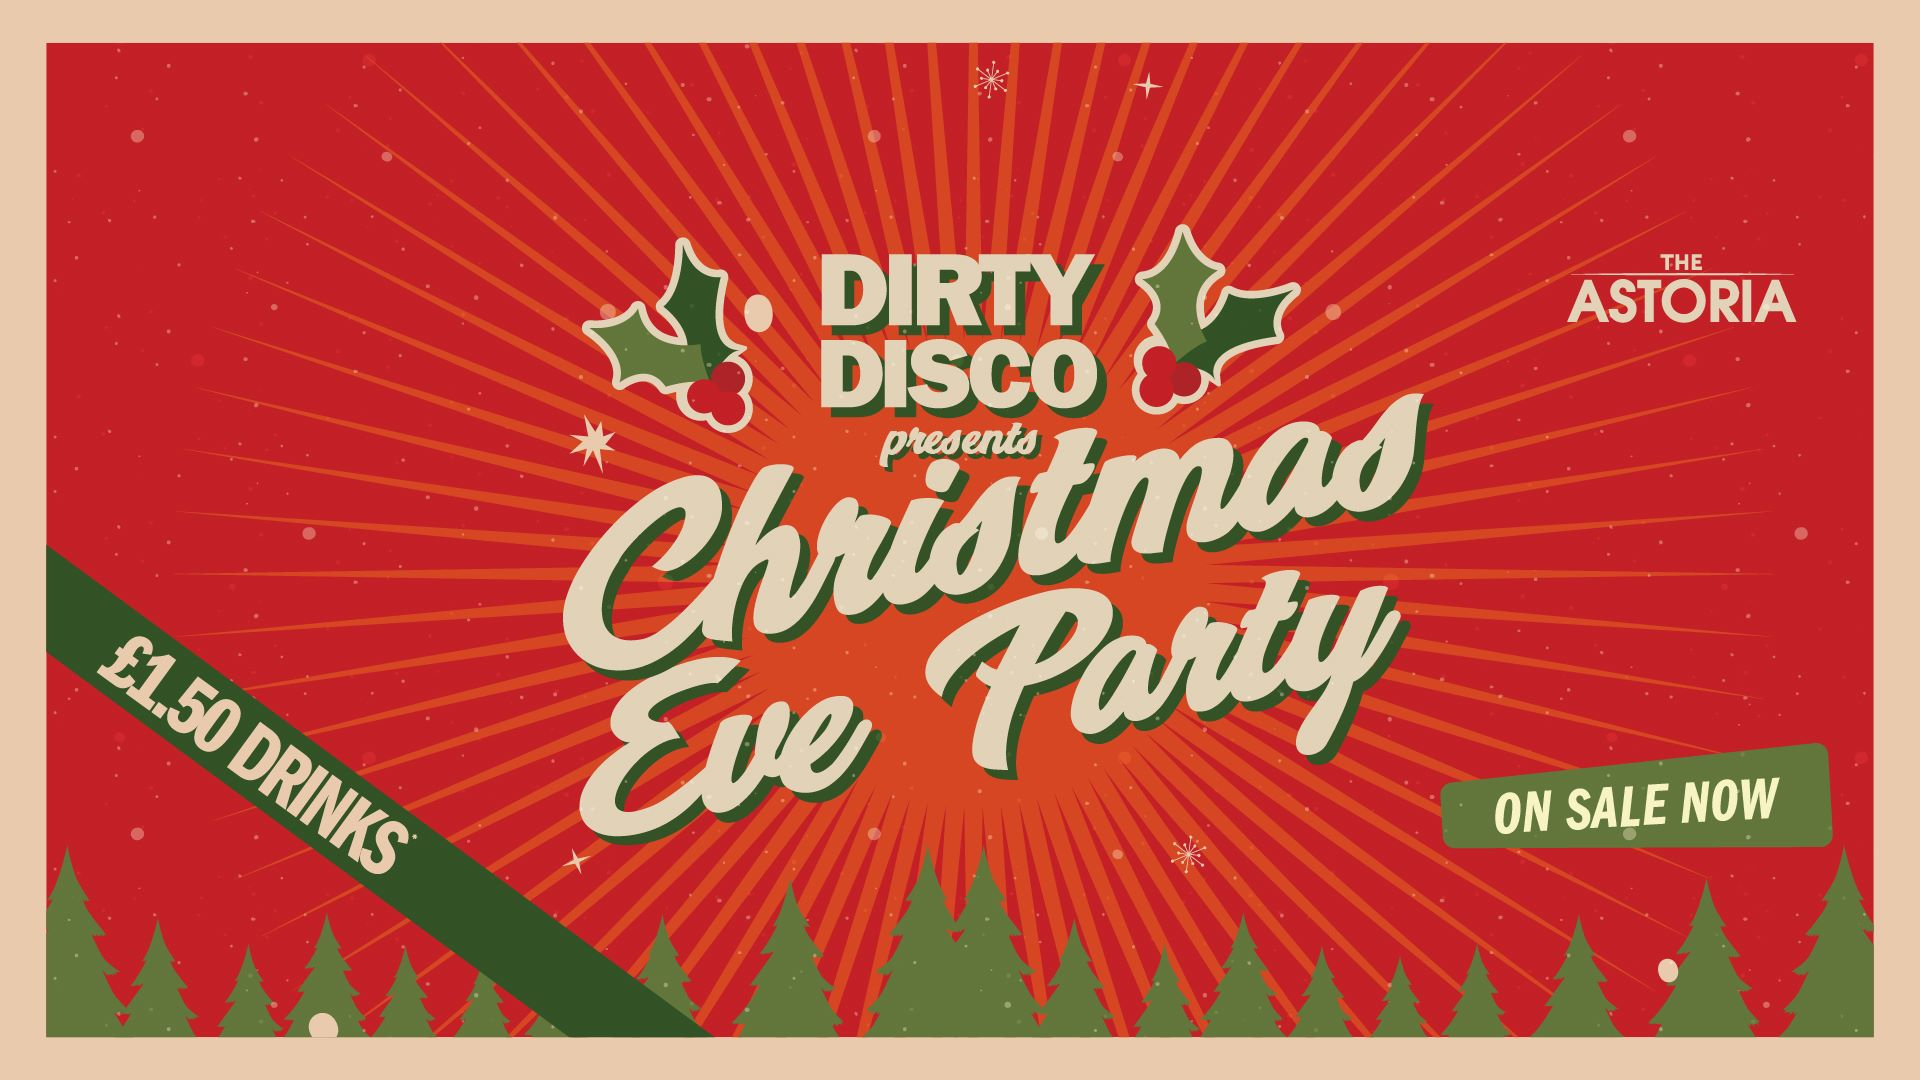 Dirty Disco presents Christmas Eve